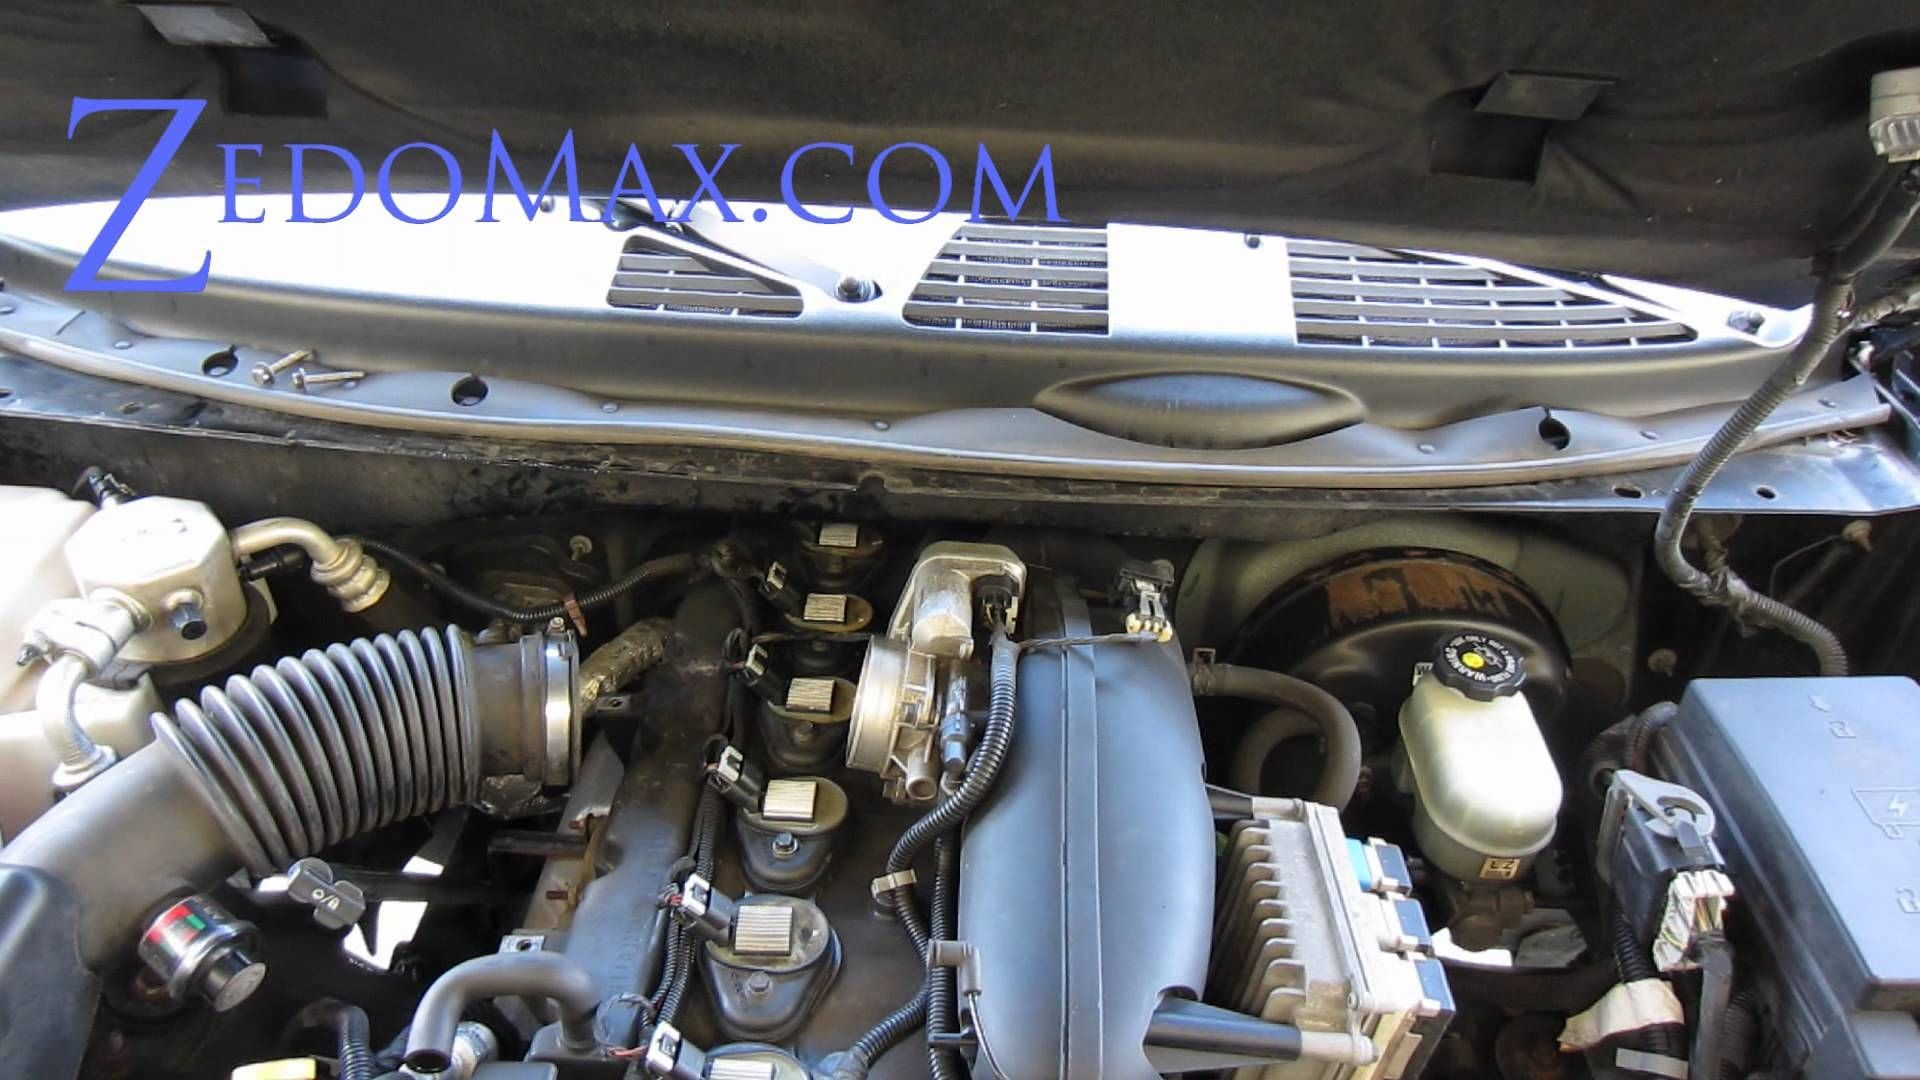 2003 Chevy Blazer Engine Diagram How to Replace Ignition Coil Spark Plugs On Chevy Trailblazer Of 2003 Chevy Blazer Engine Diagram